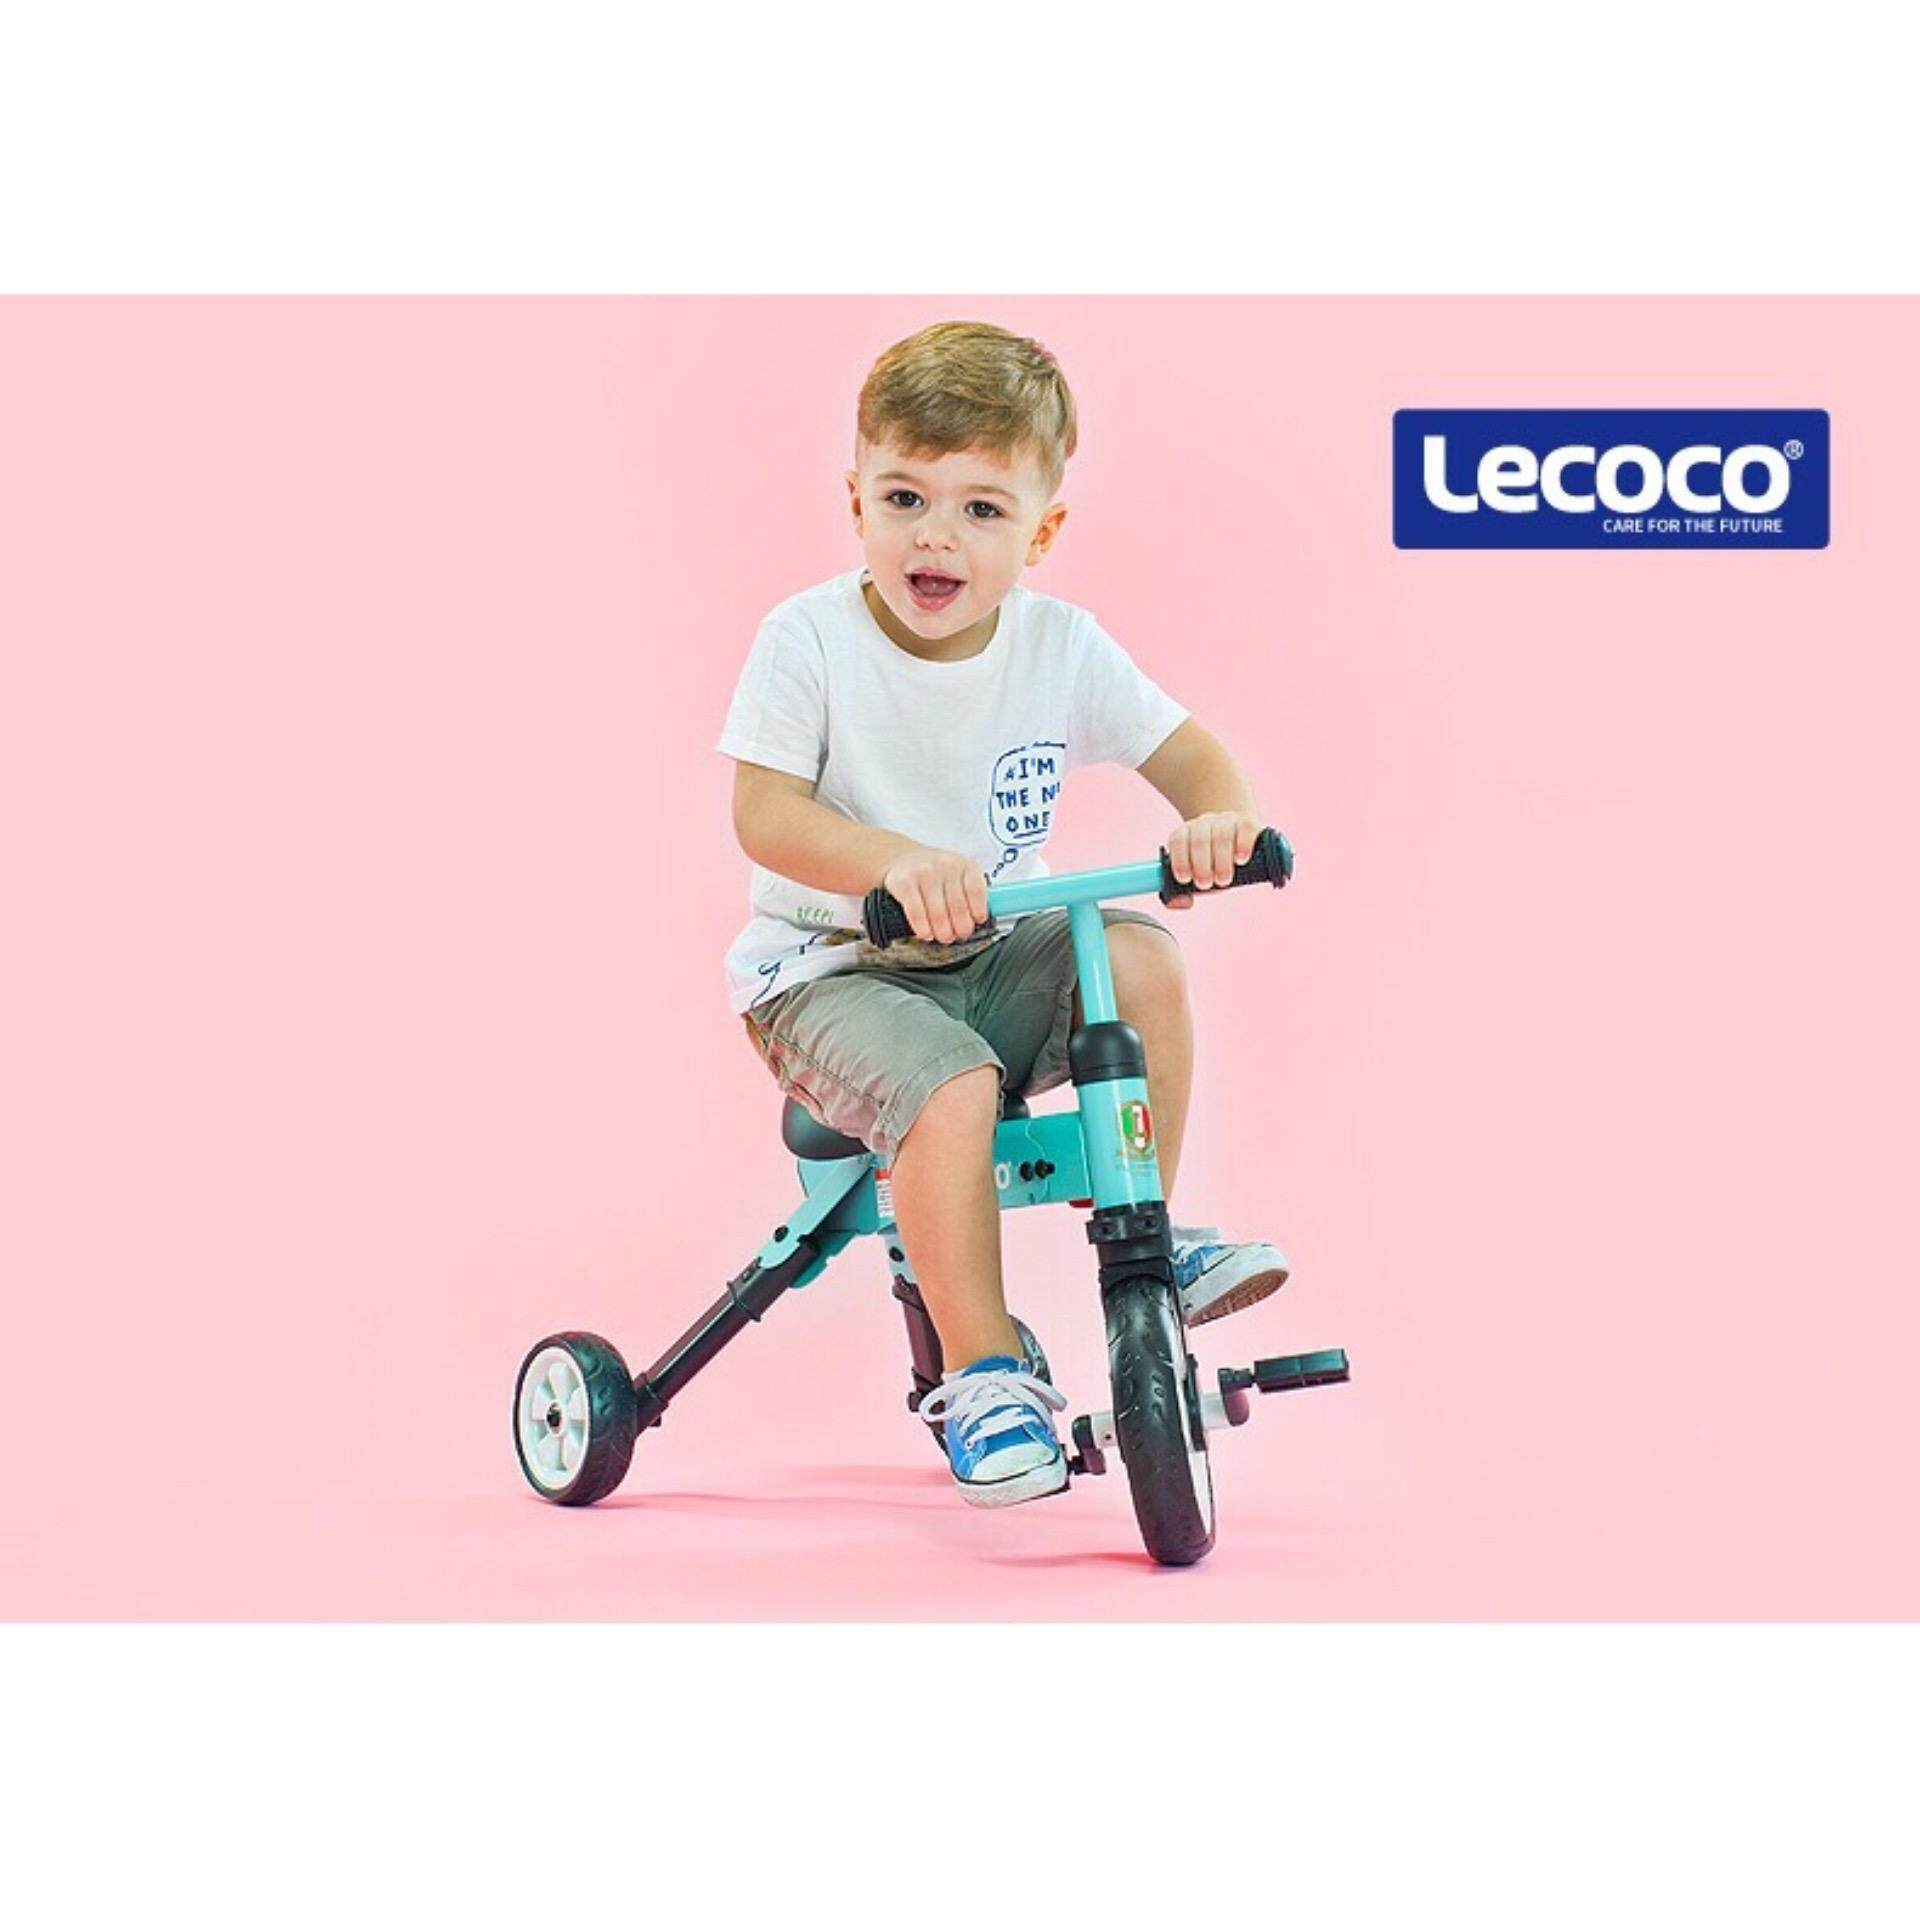 Lecoco Tiny Kid Lightweight Foldable & Portable Tricycle Bicycle Push Bike